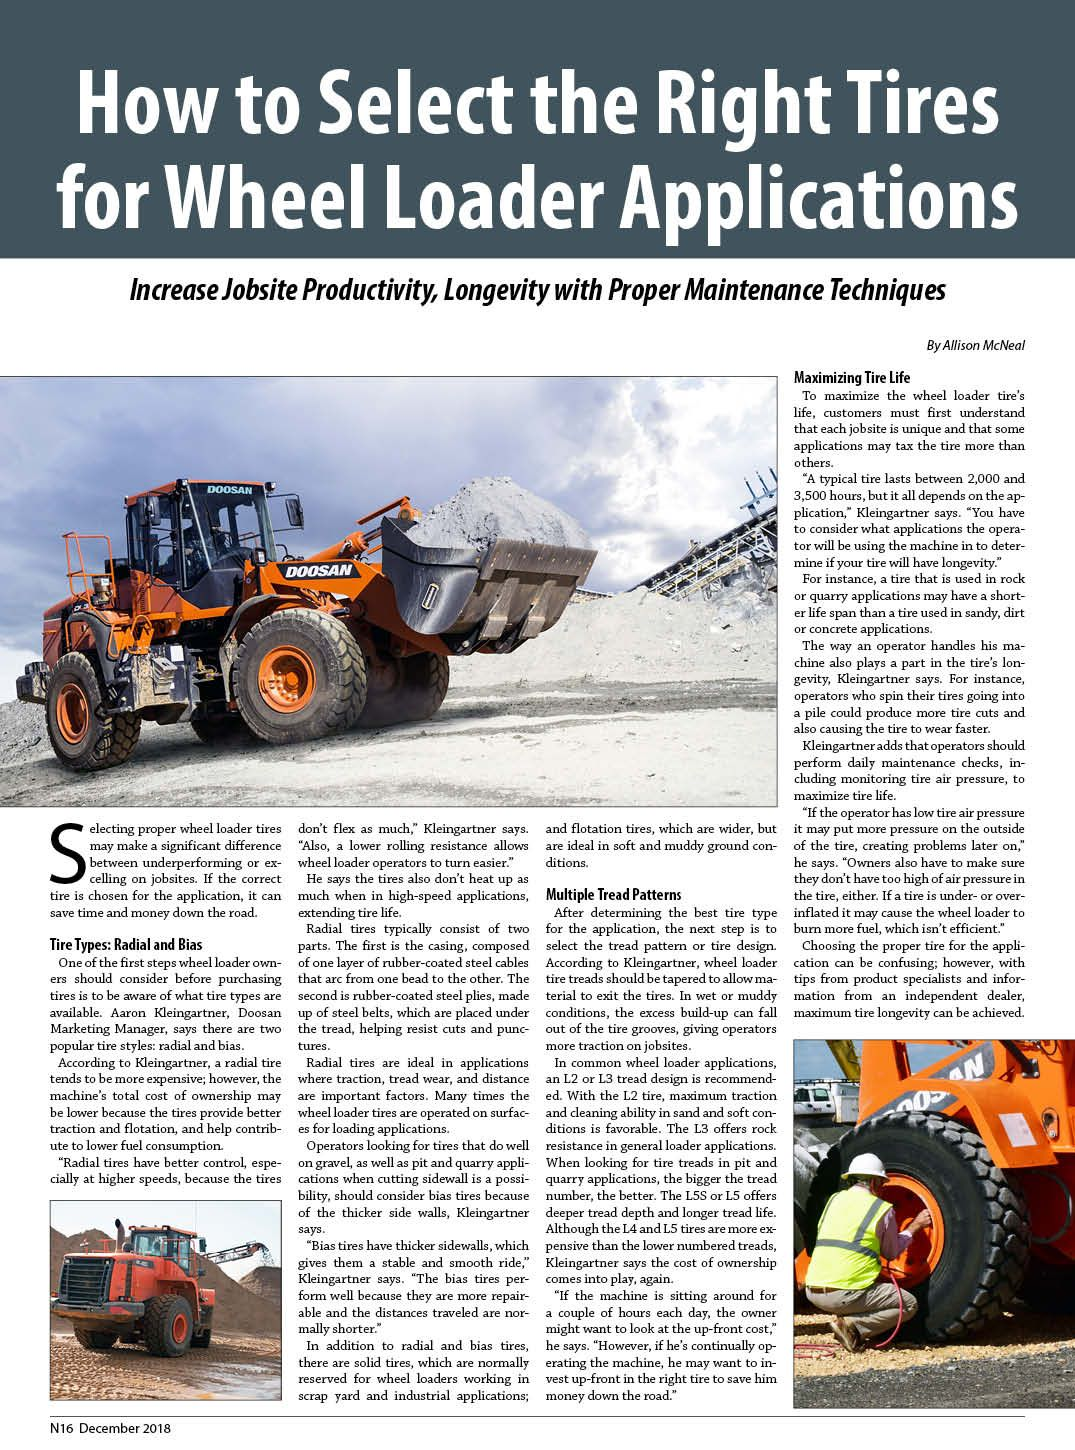 How to Select the Right Tires for Wheel Loader